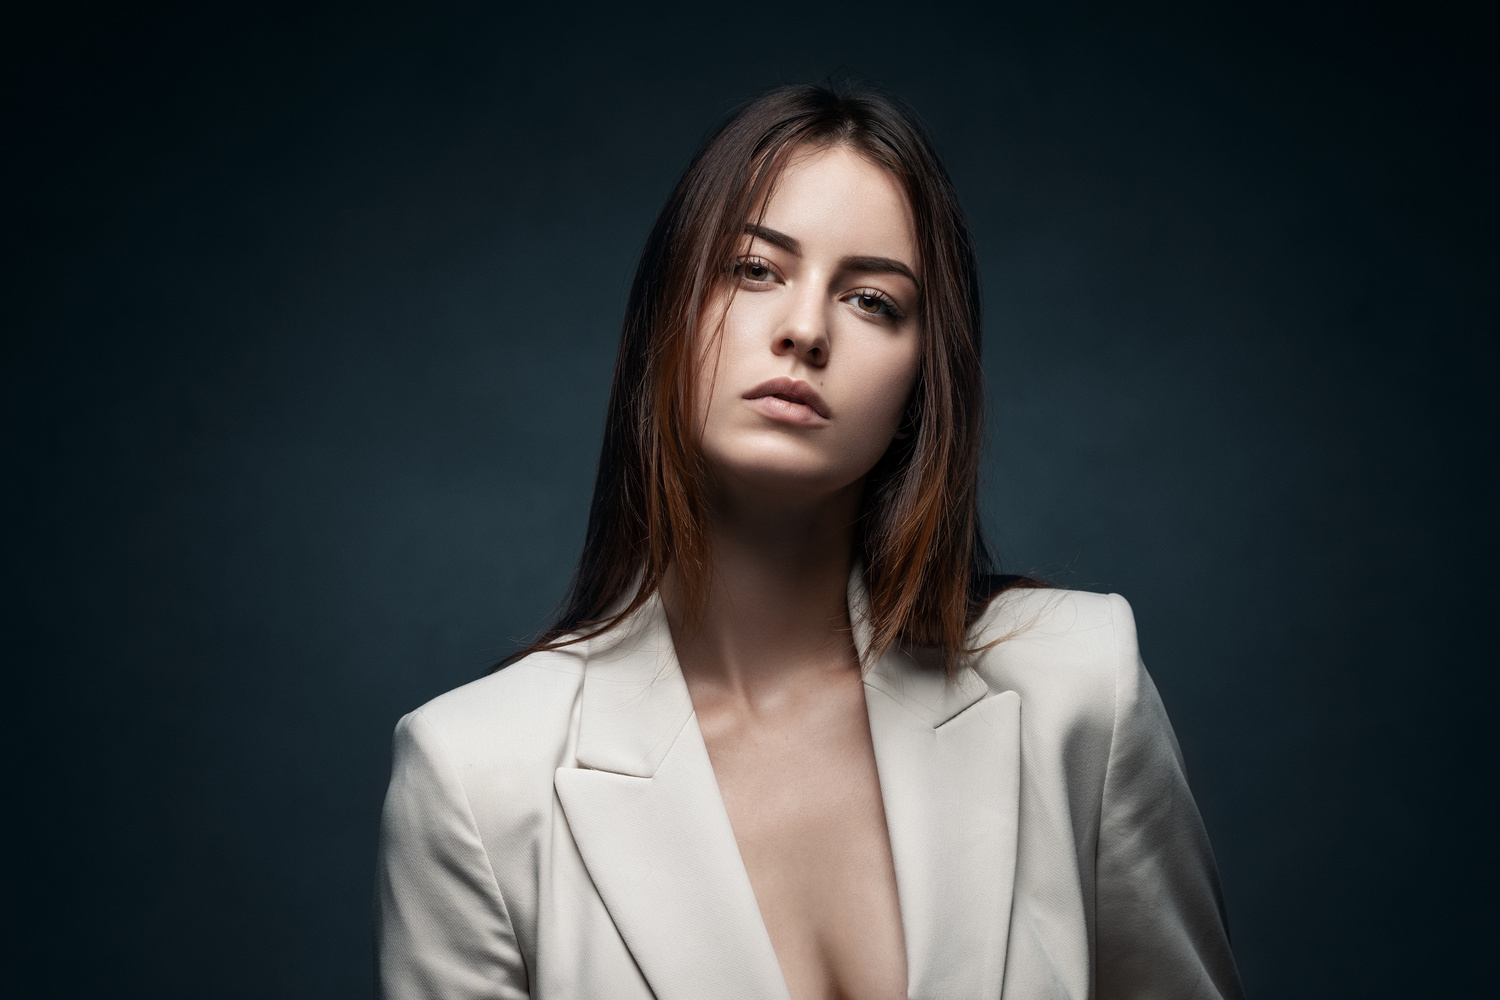 Elise by stephane rouxel